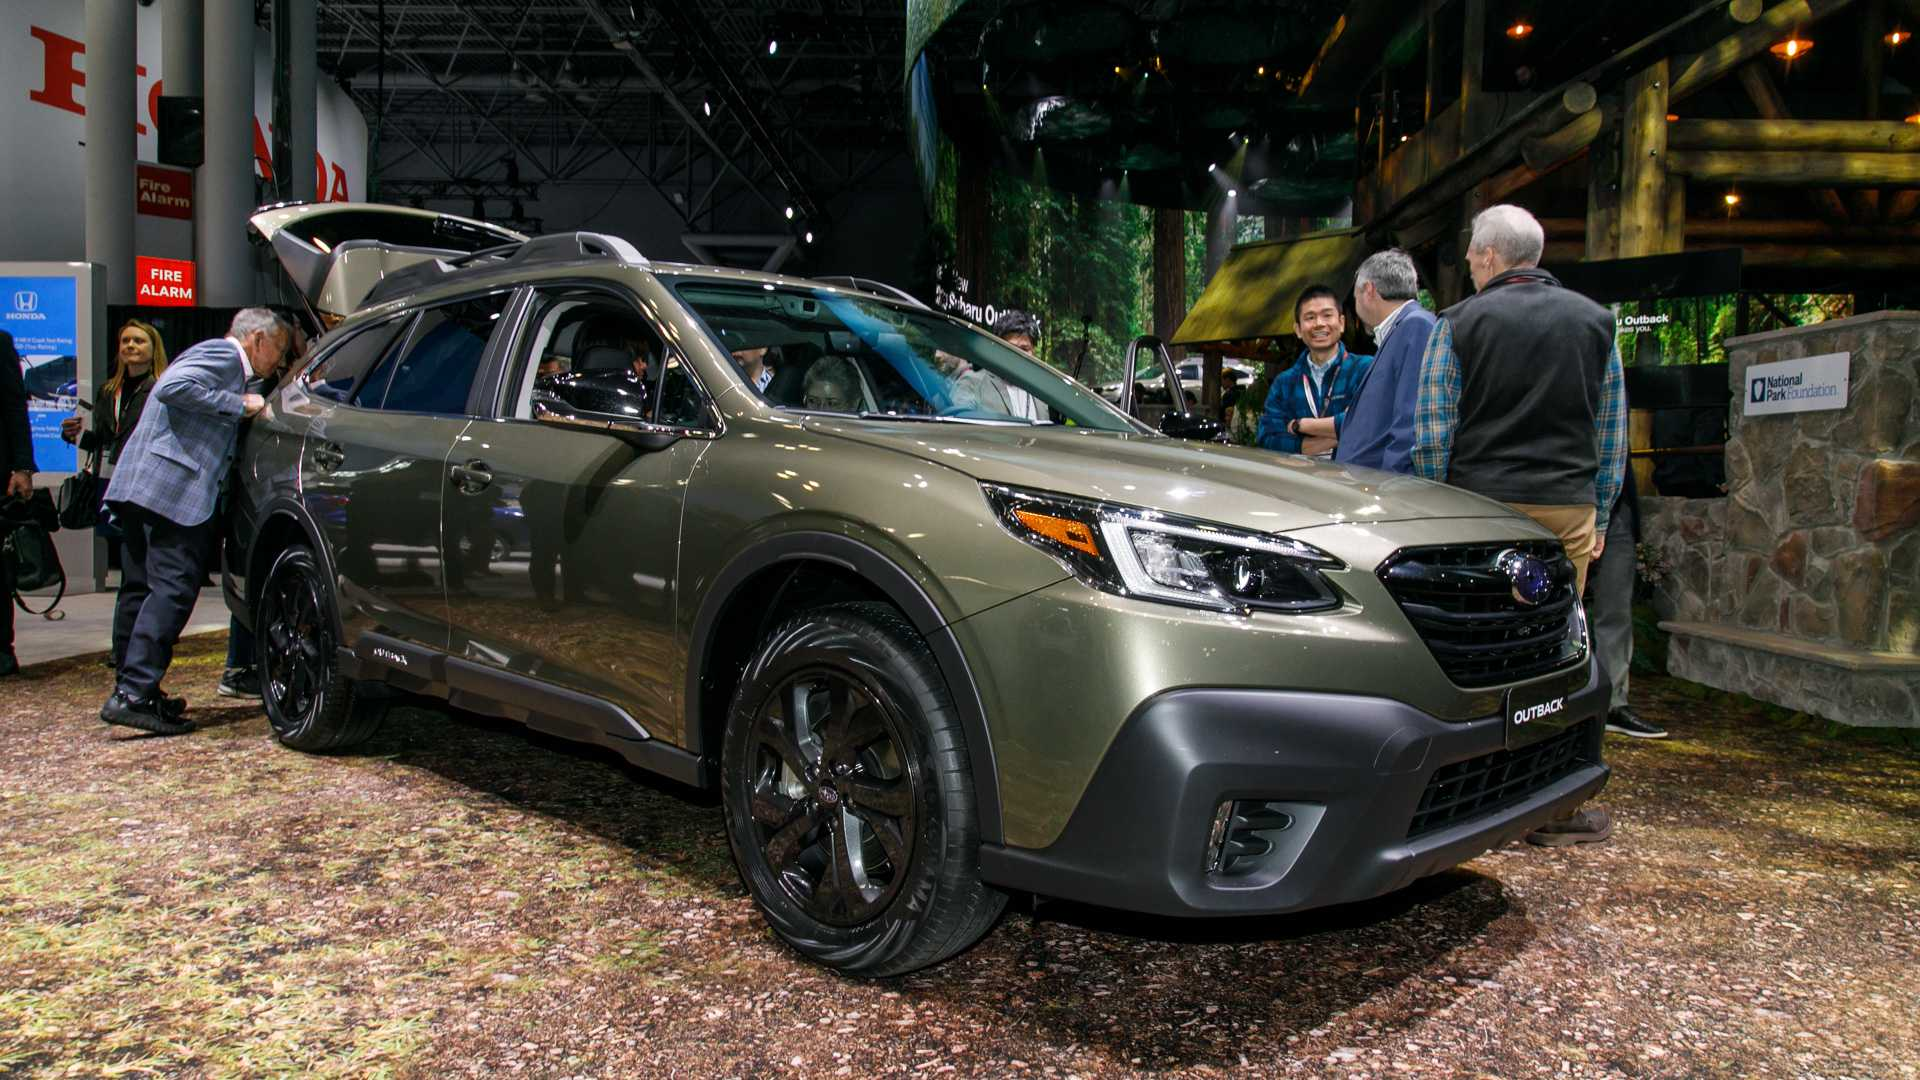 2020 Subaru Outback Priced From $26,645, Legacy From $22,745